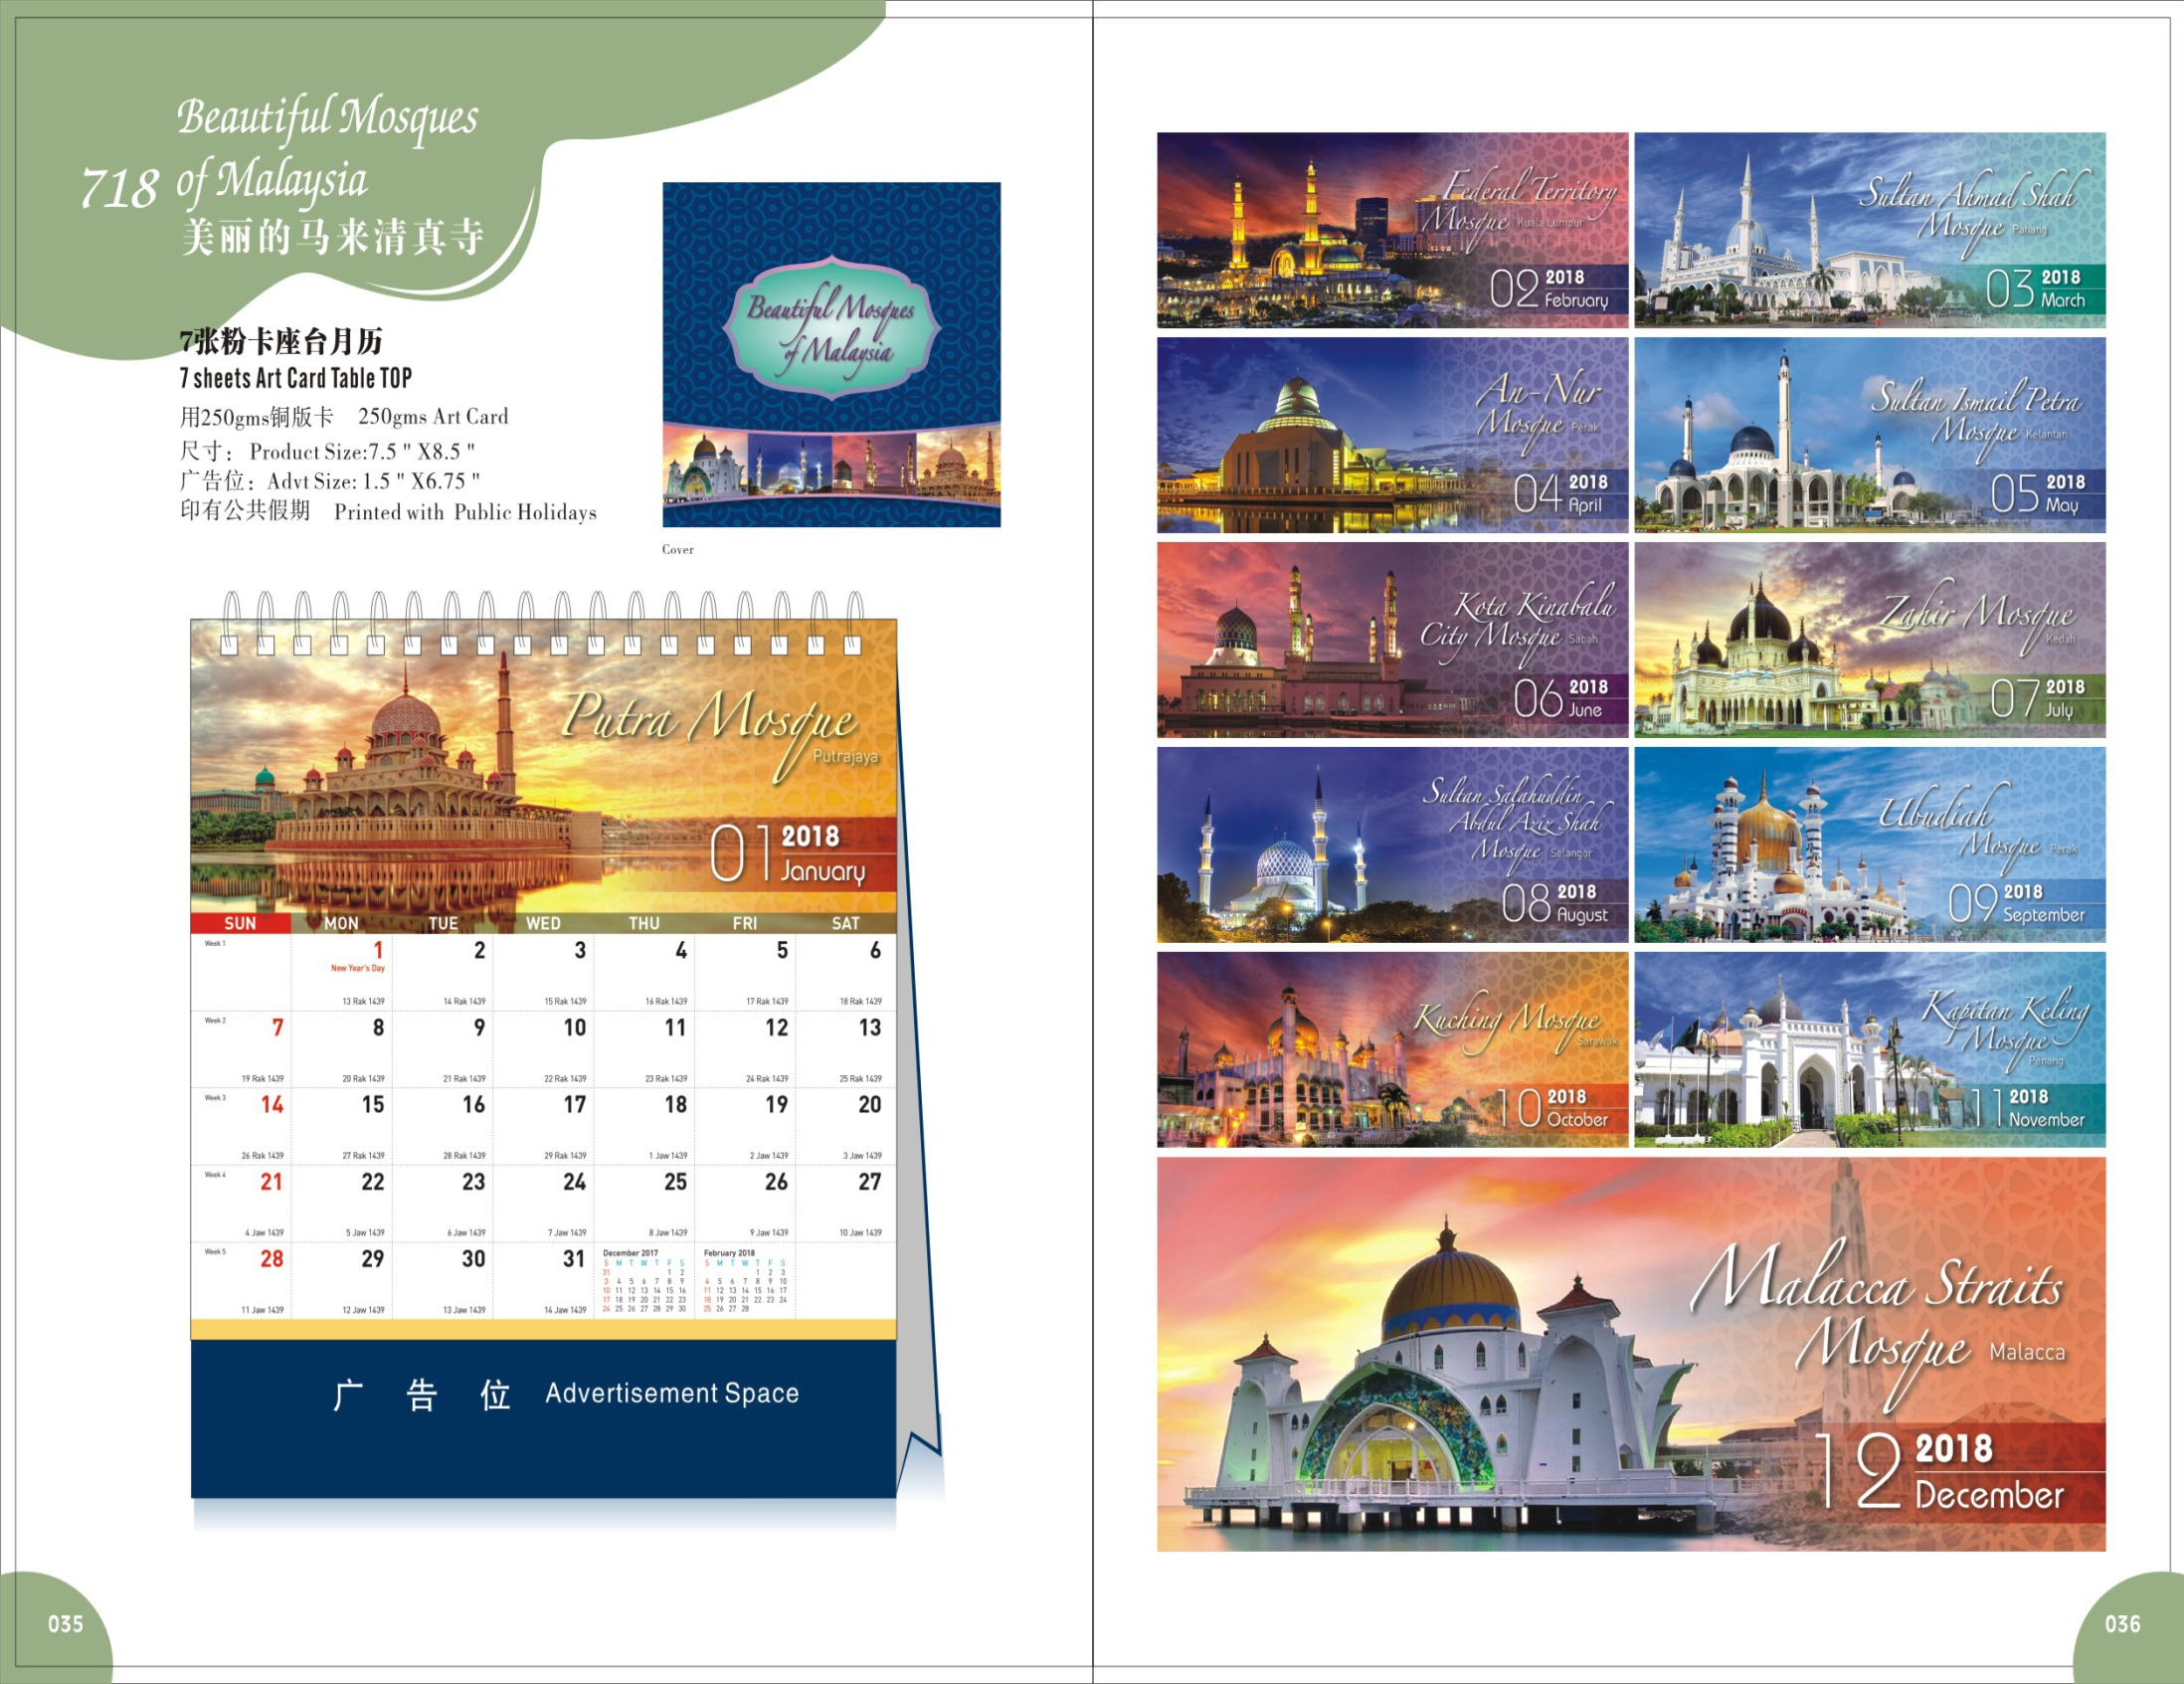 2018 Desk Calendar Malaysia Beautiful Mosques